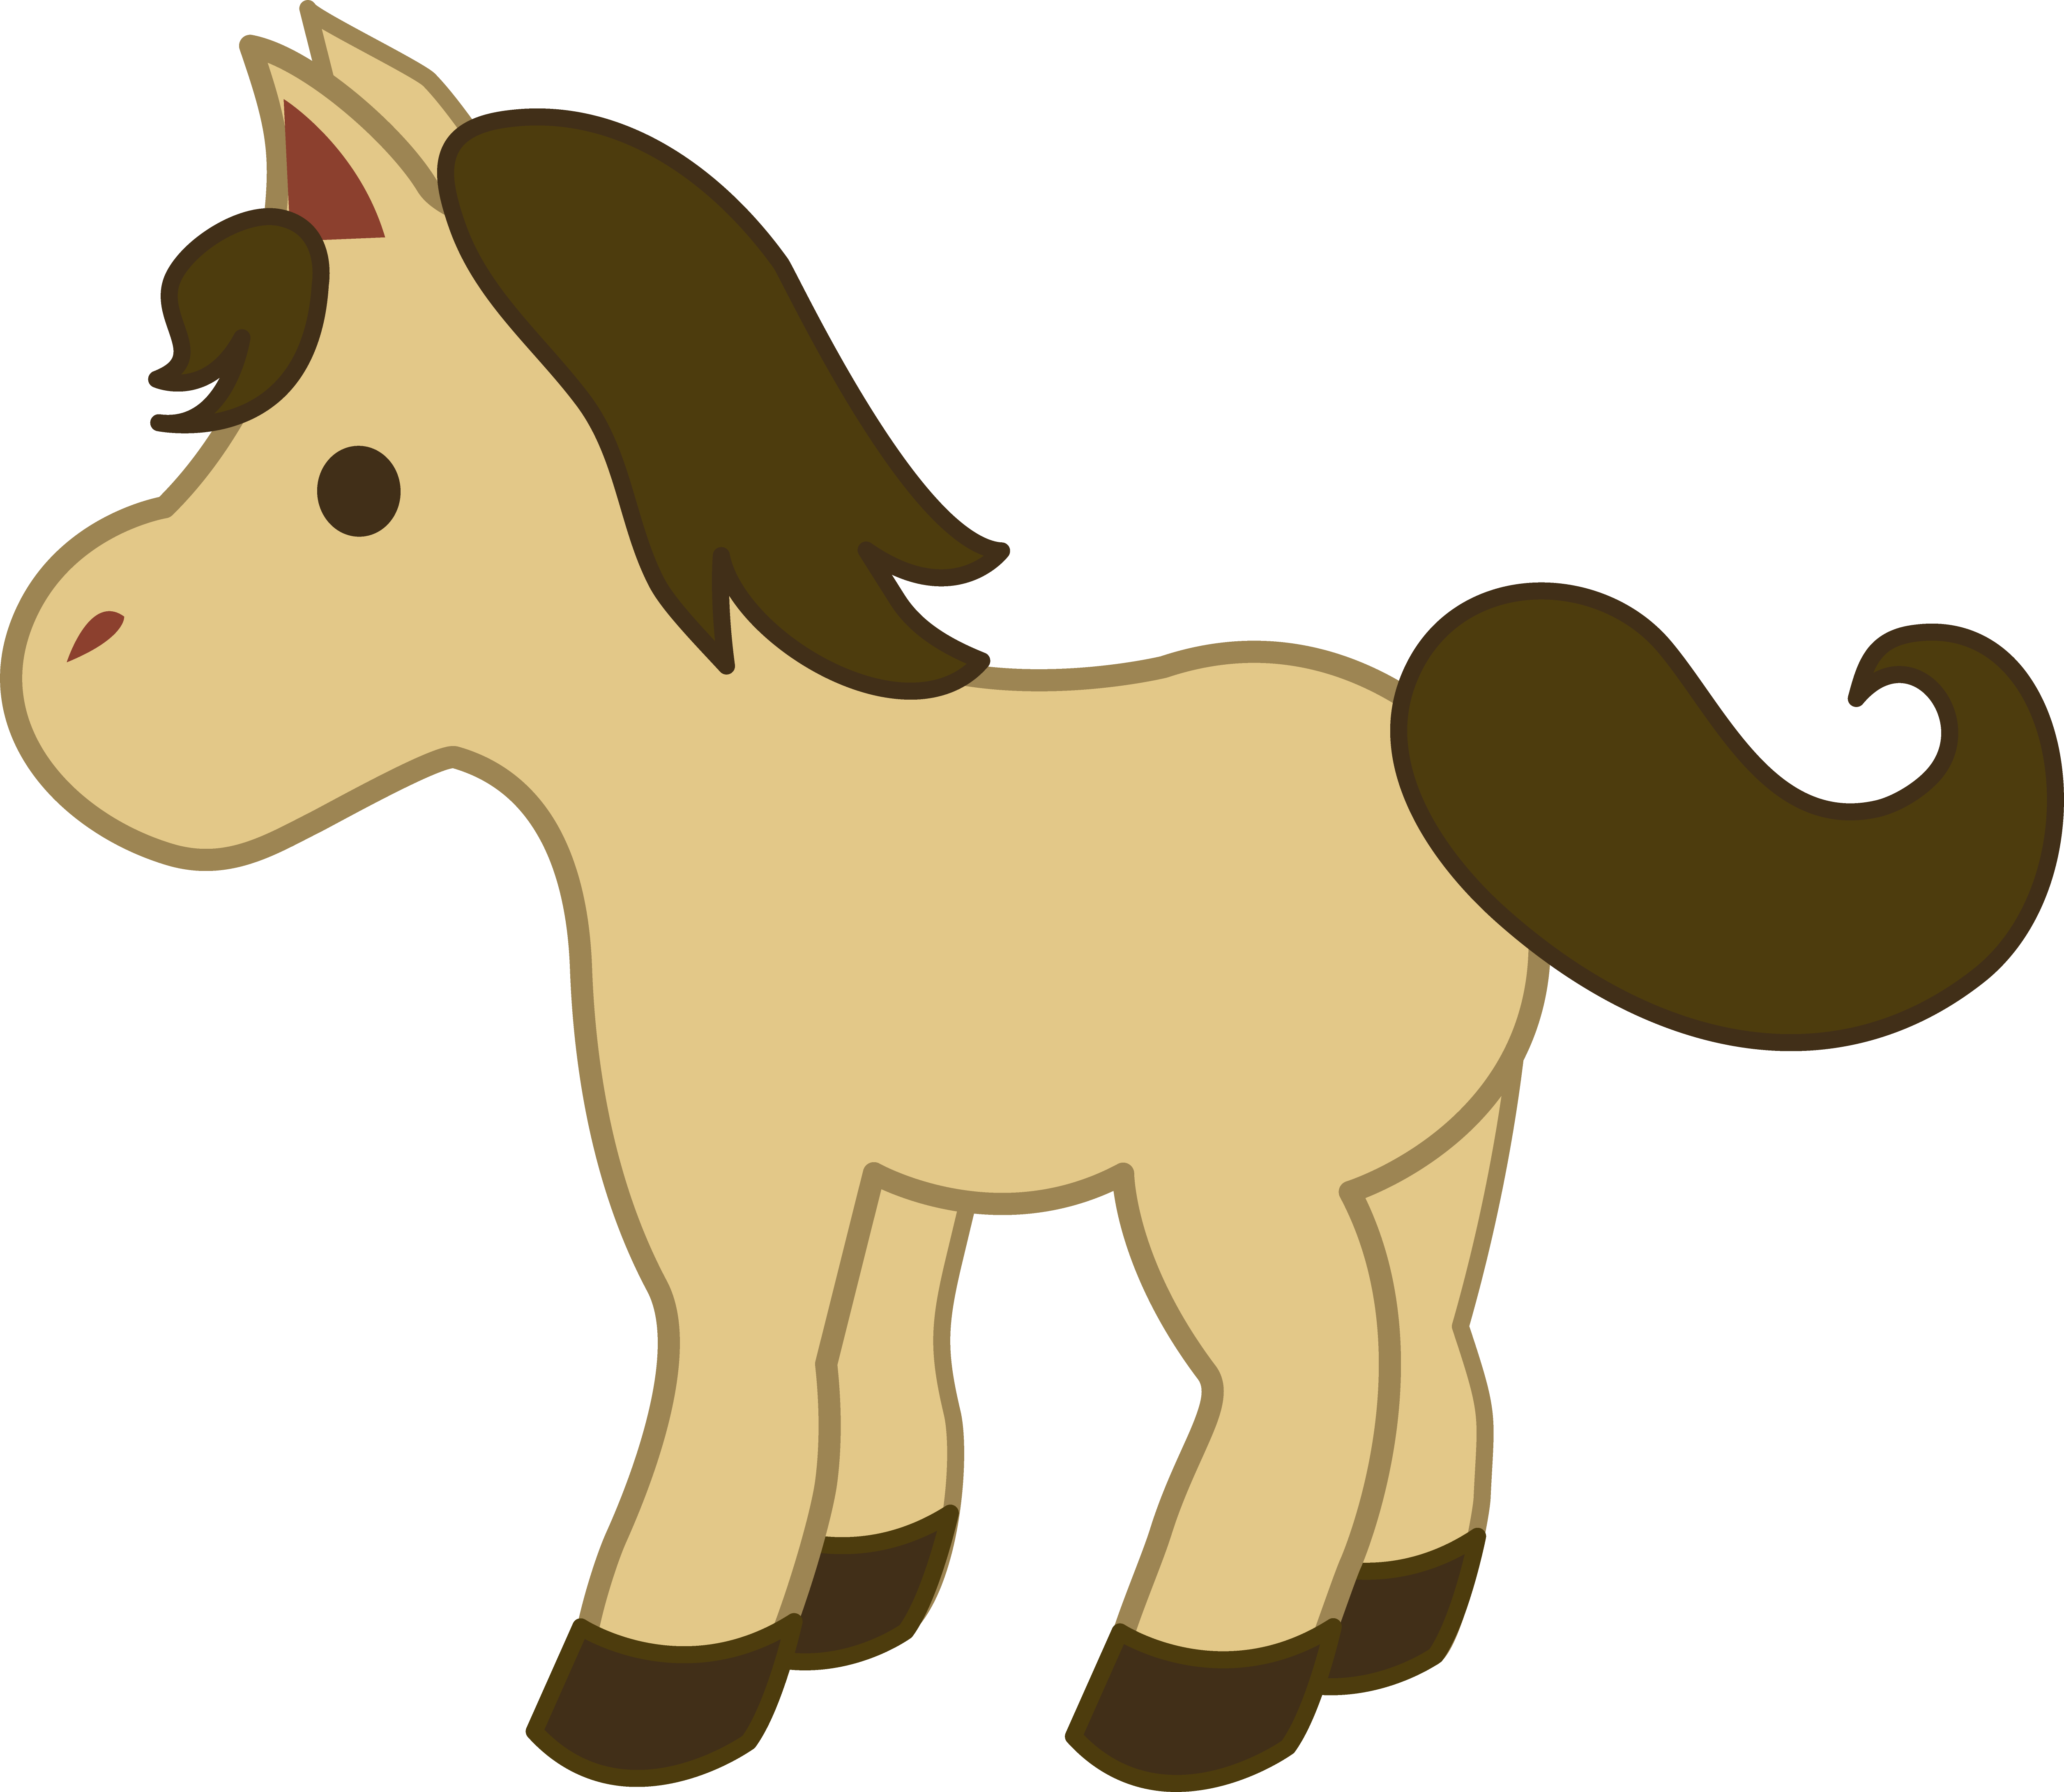 pin by wanda sory on baby children items pinterest google images rh pinterest ie baby horse clipart baby horse image clip art